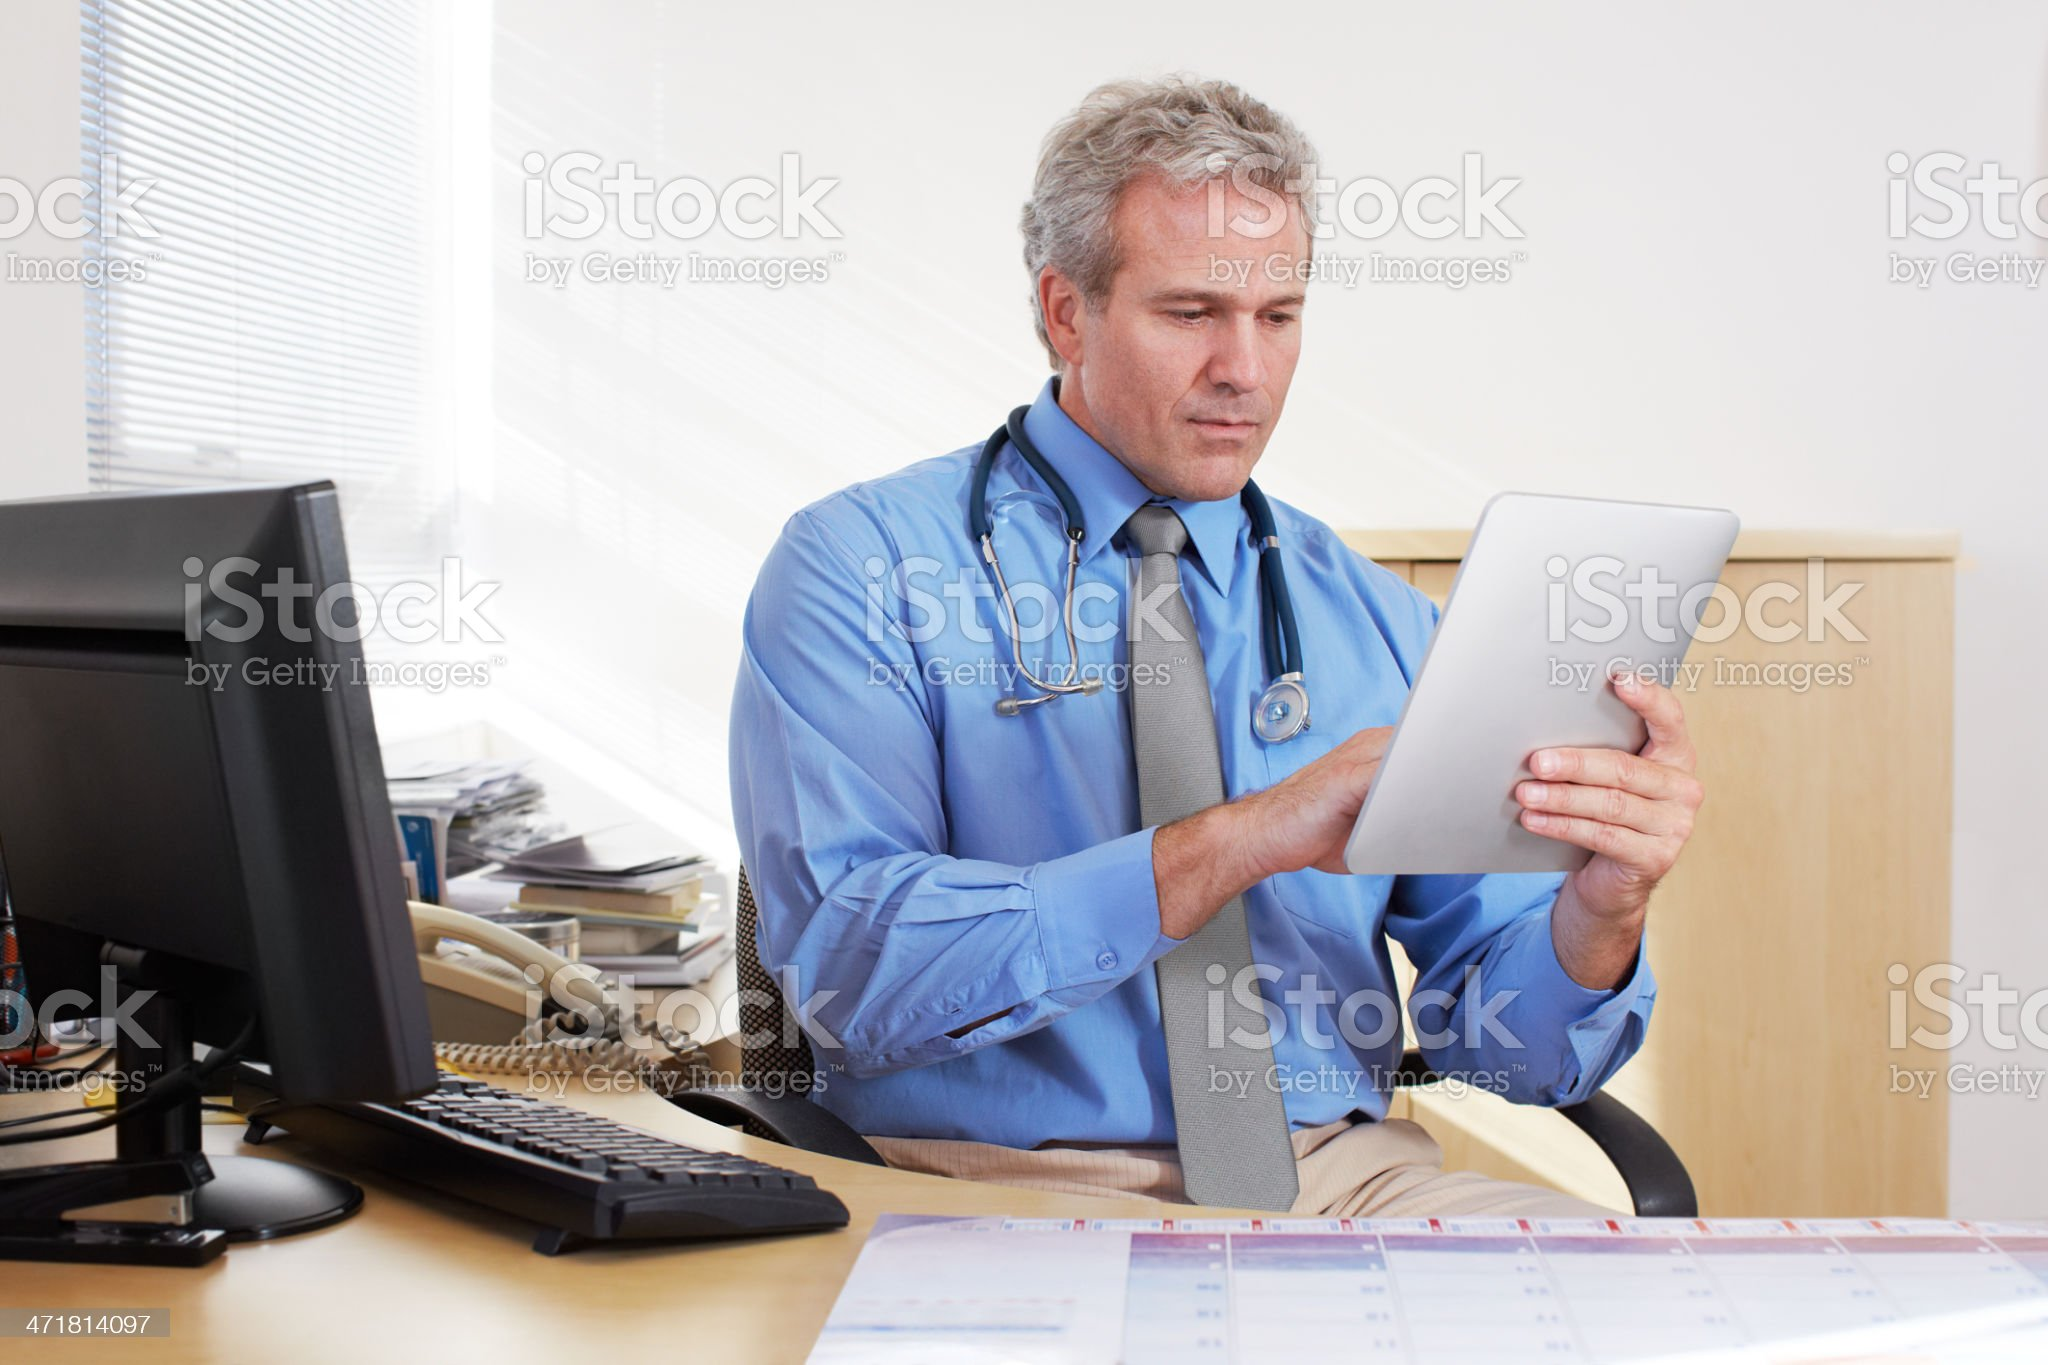 Using modern technology to aid his patient management royalty-free stock photo